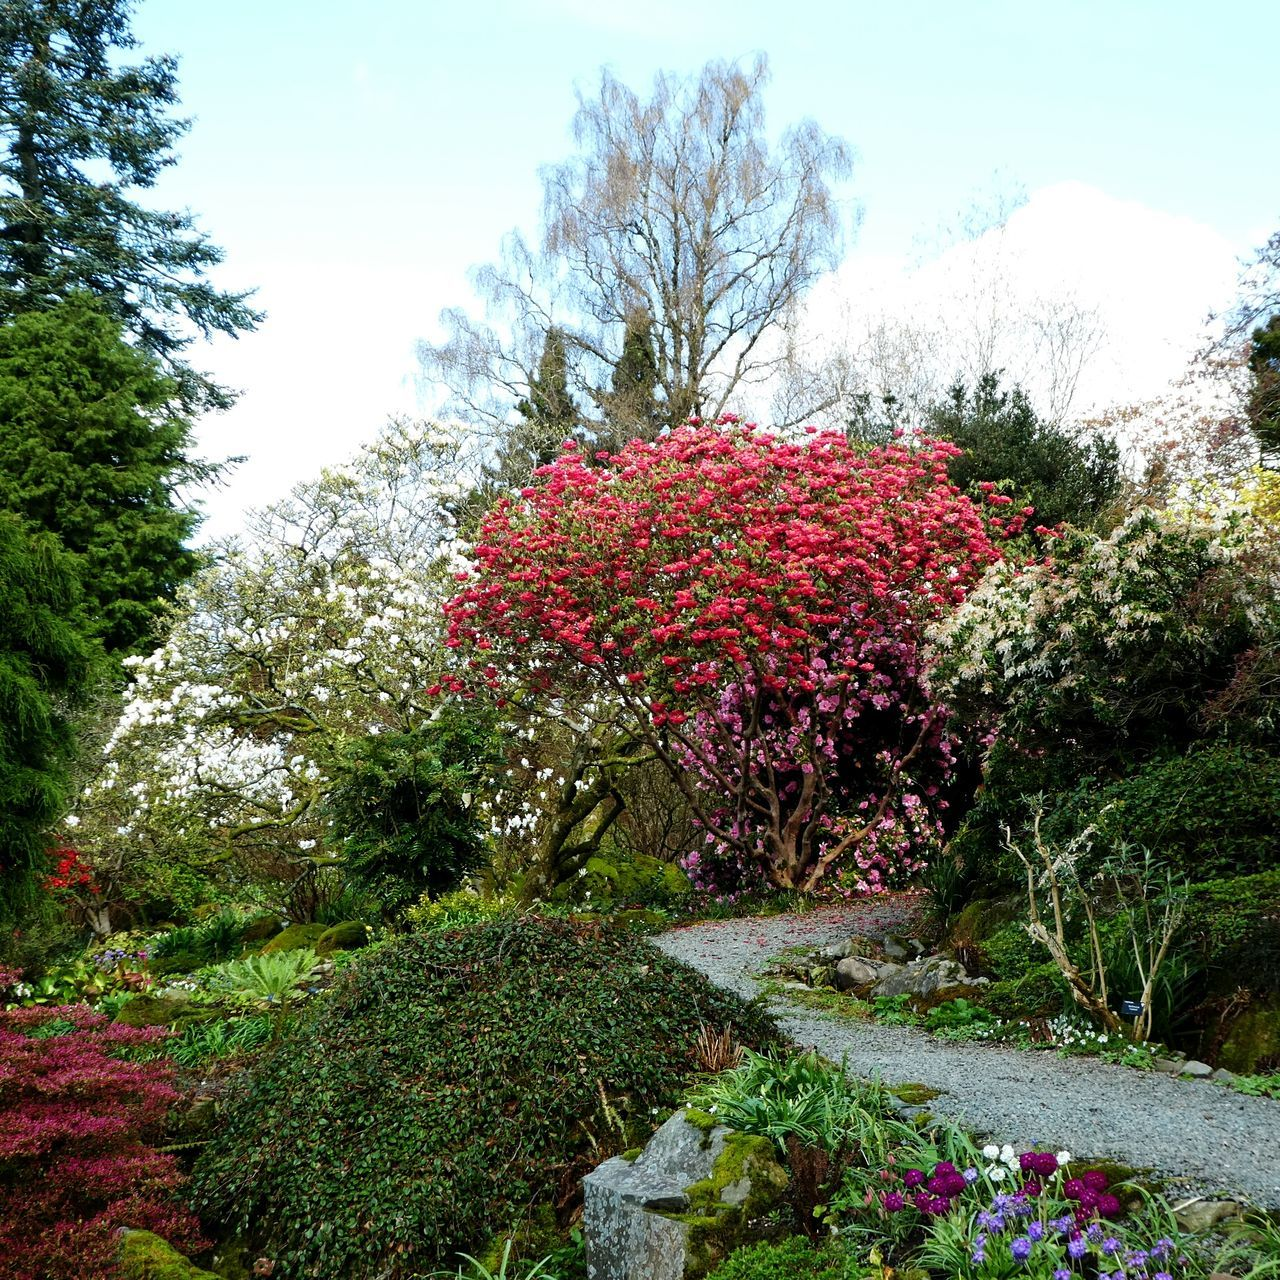 The English country garden in her finest spring 'tutti frutti' colours. Holehird Gardens, The English Lake District. Énglish Country Garden Tutti Frutti Colours Azaleas Camelias Rhododendron Wood Anemone Drumstick Primula Japanese Maple Pathway Growth Tree Outdoors Landscape Tranquility No People Make EyeEm A Troll-Free Zone! EyeEm Nature Lover Rural Scene Simple Quiet Love